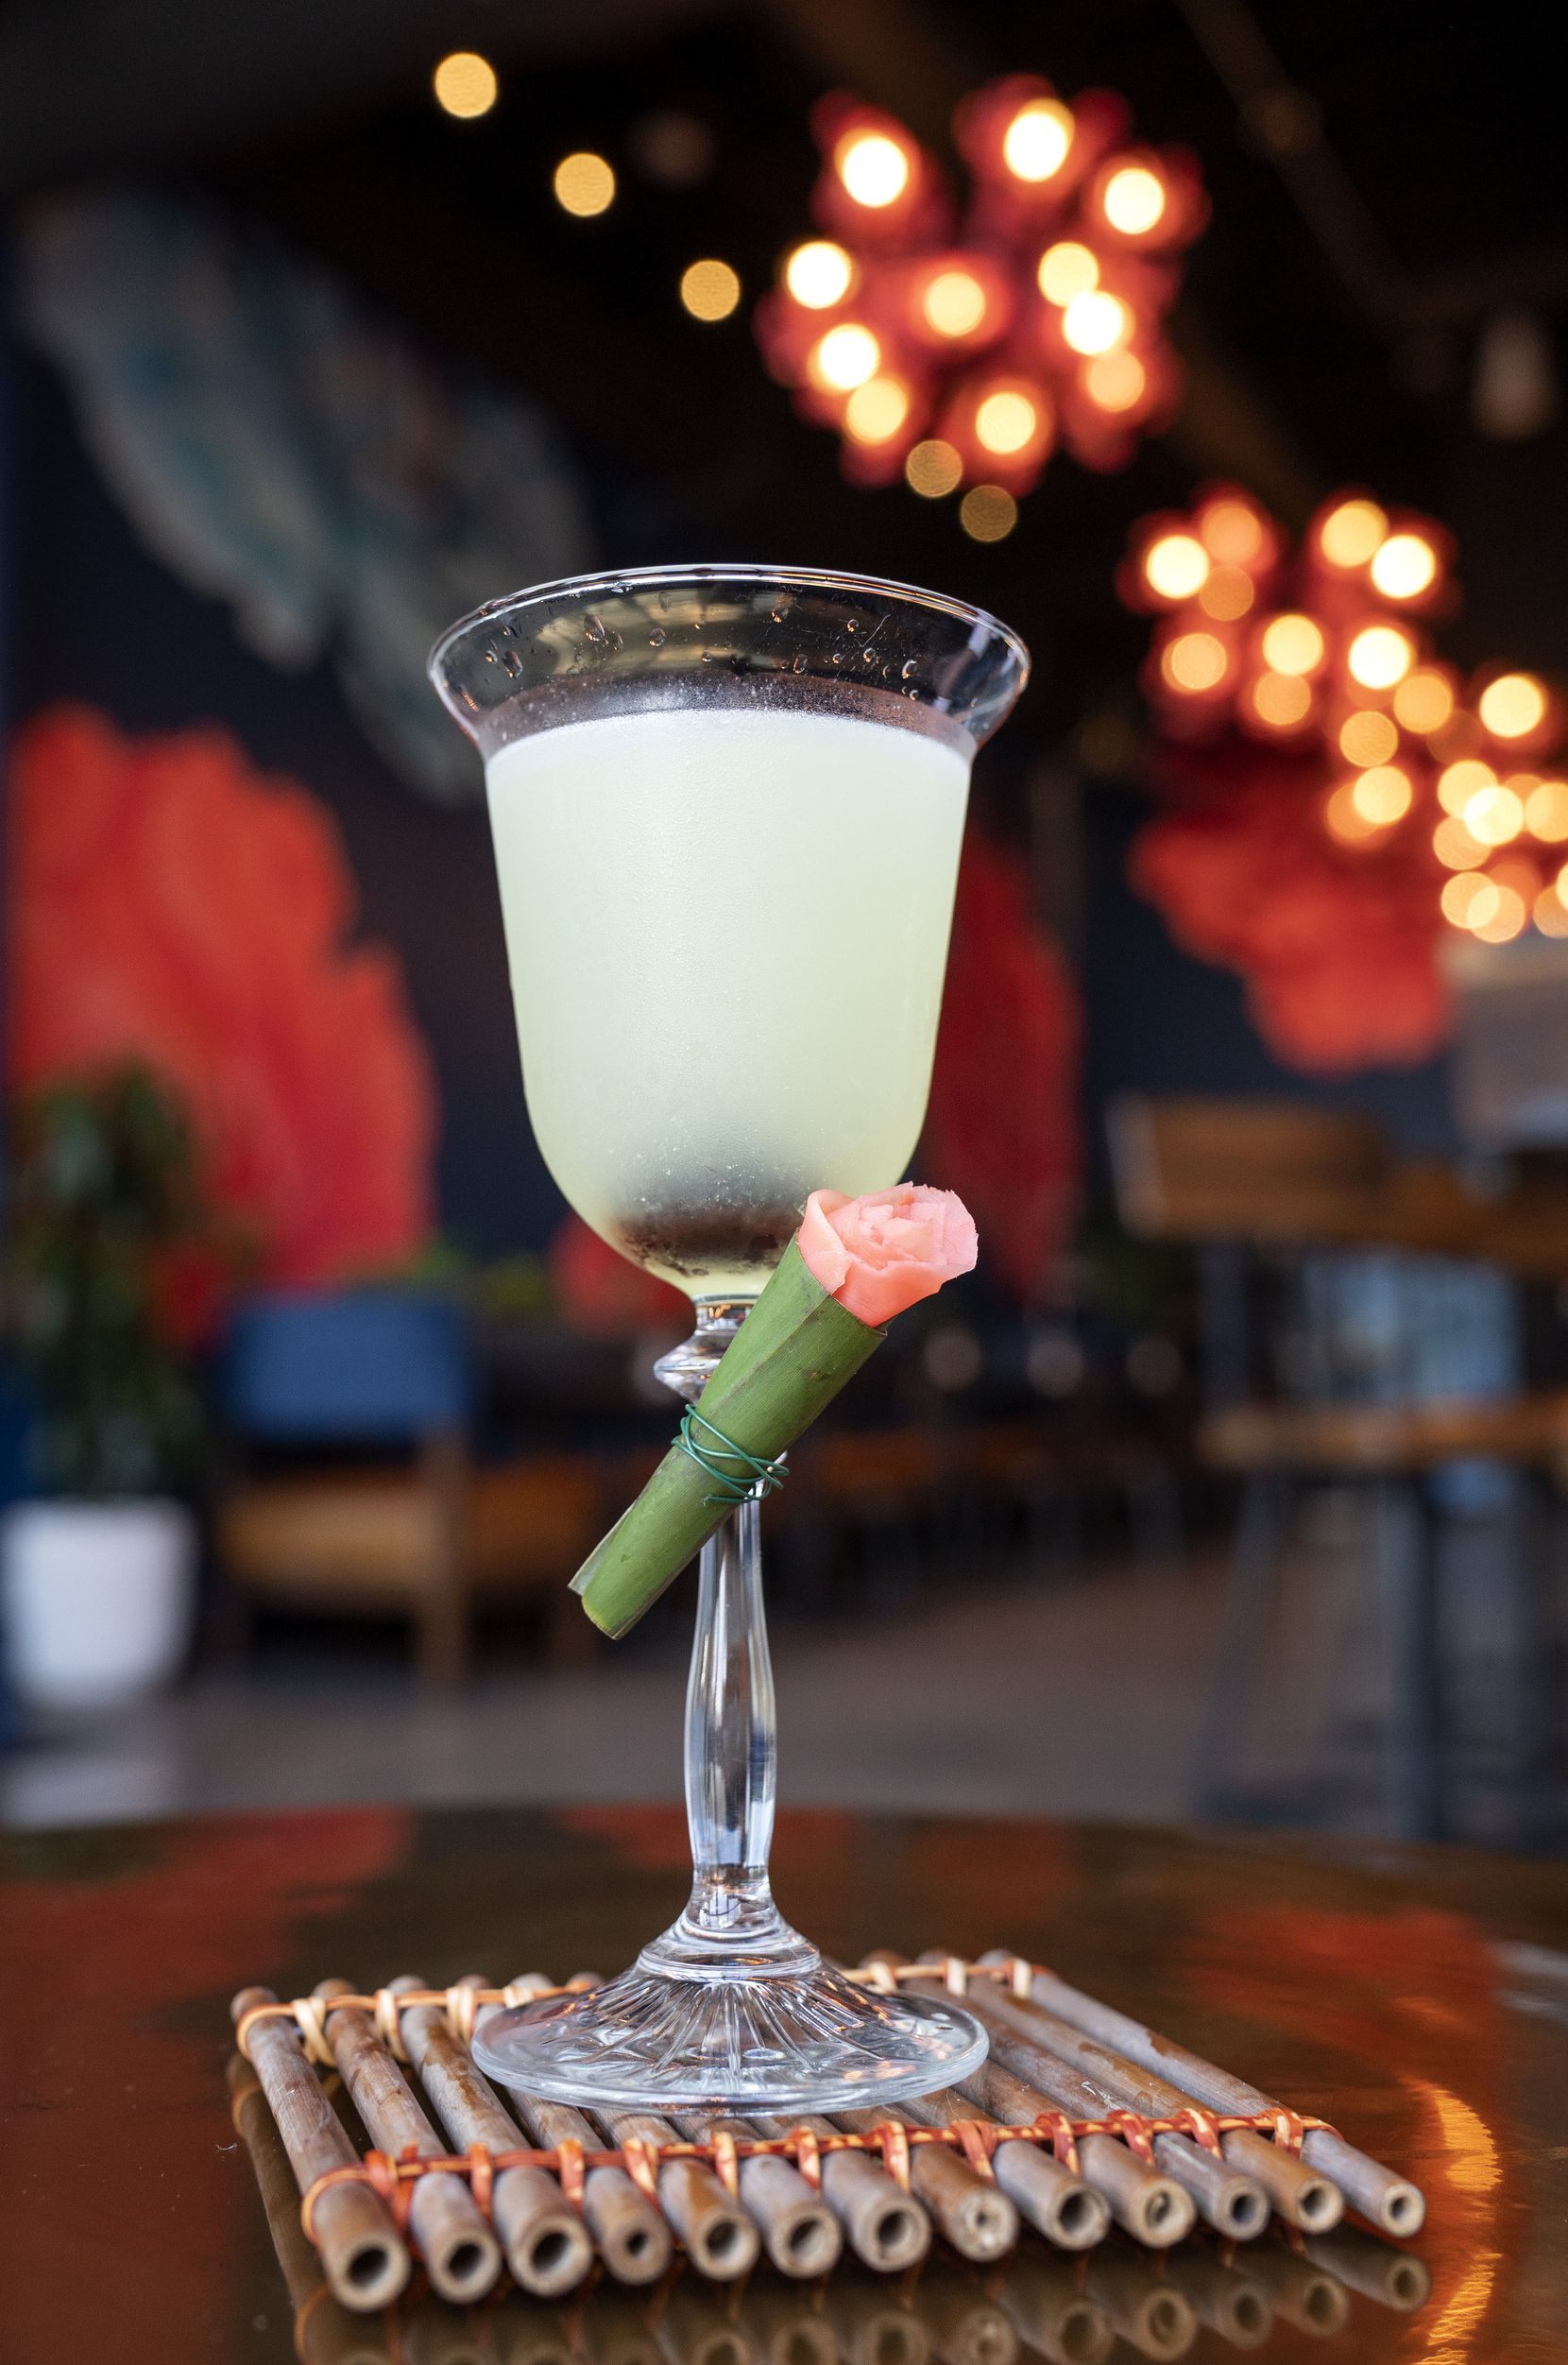 The Tokyo cocktail comes with pickled ginger, rolled to look like a rose.